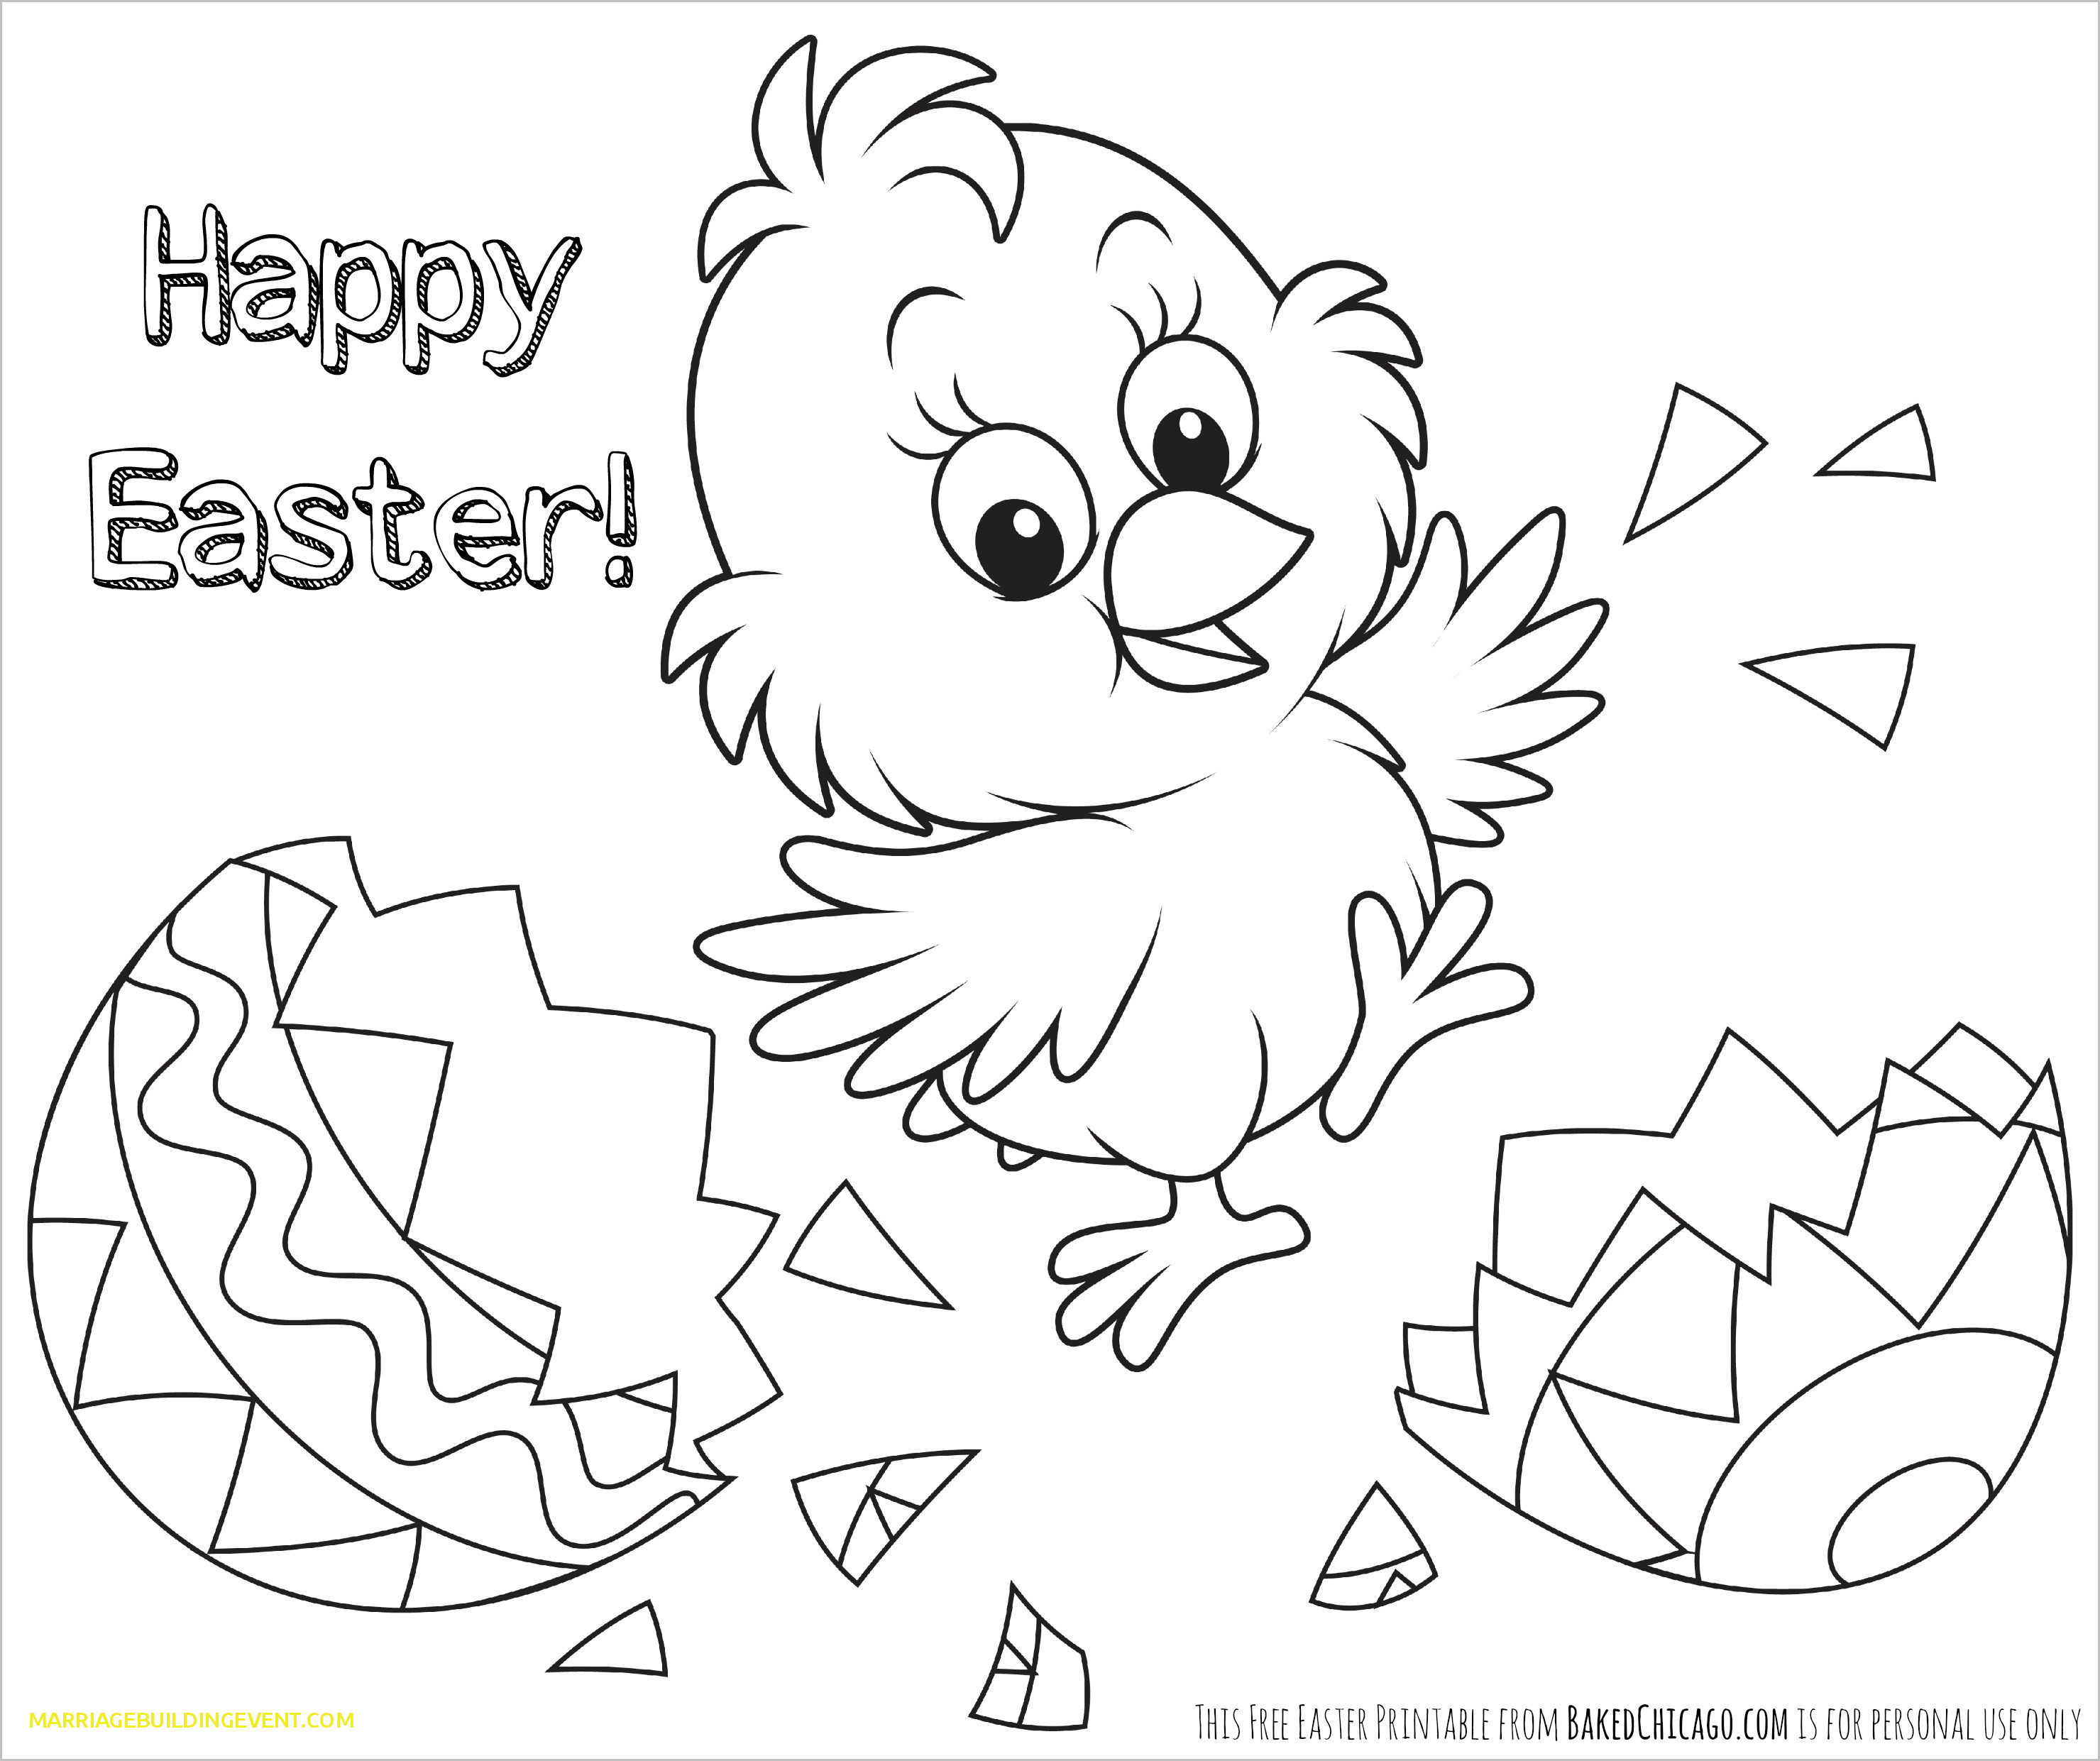 Beau Easter Coloring Pages For Kids To Print | Marriagebuildingevent - Free Printable Easter Coloring Pages